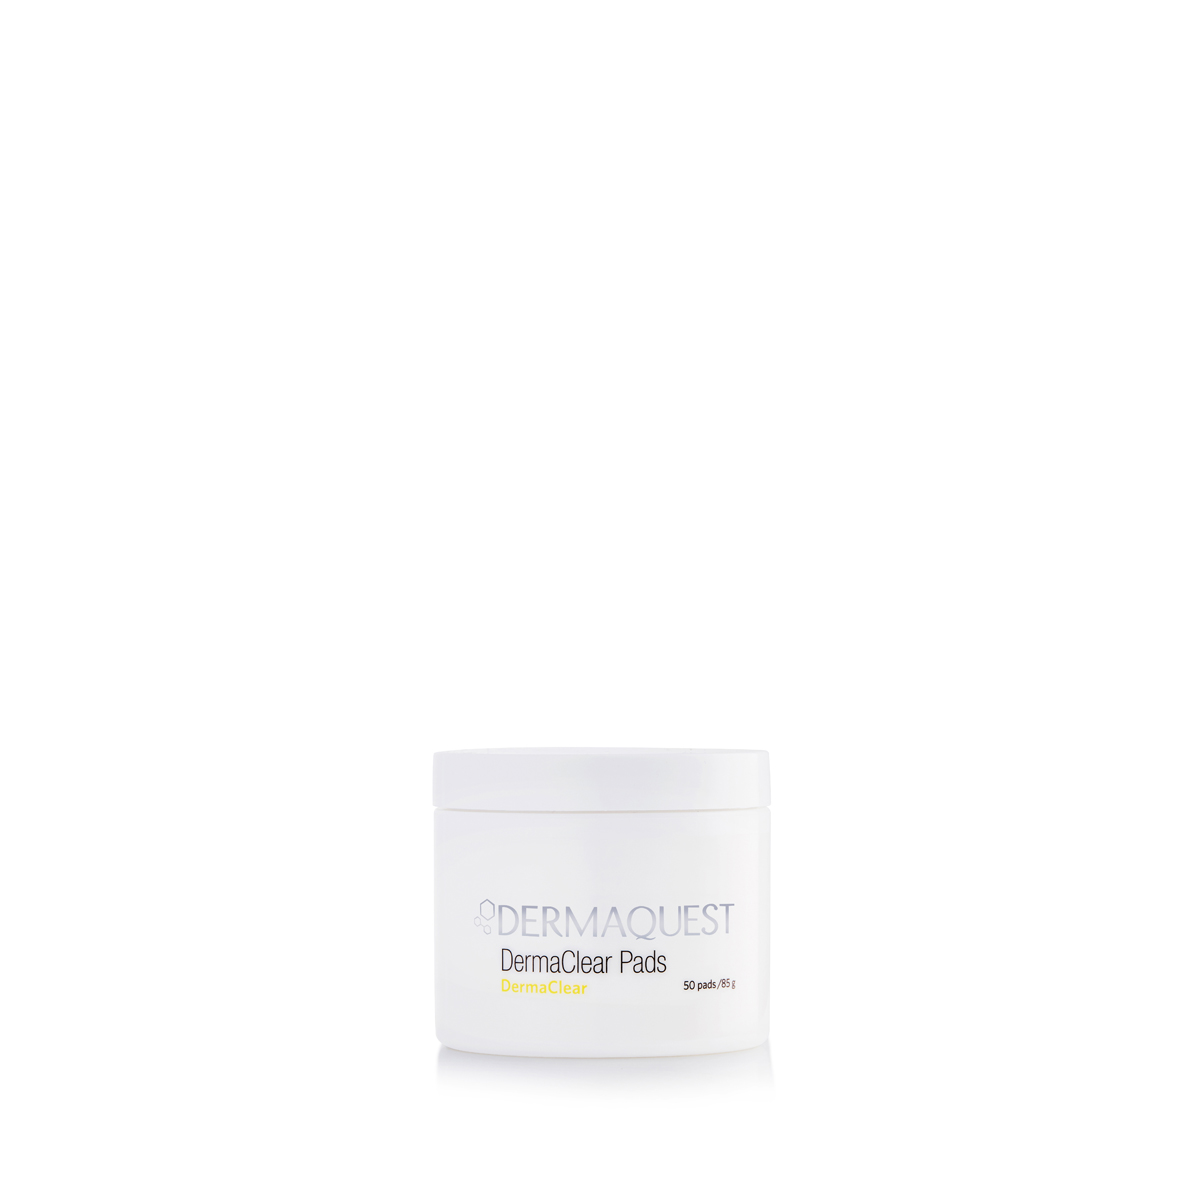 Dermaclear Pads – Dermaclear